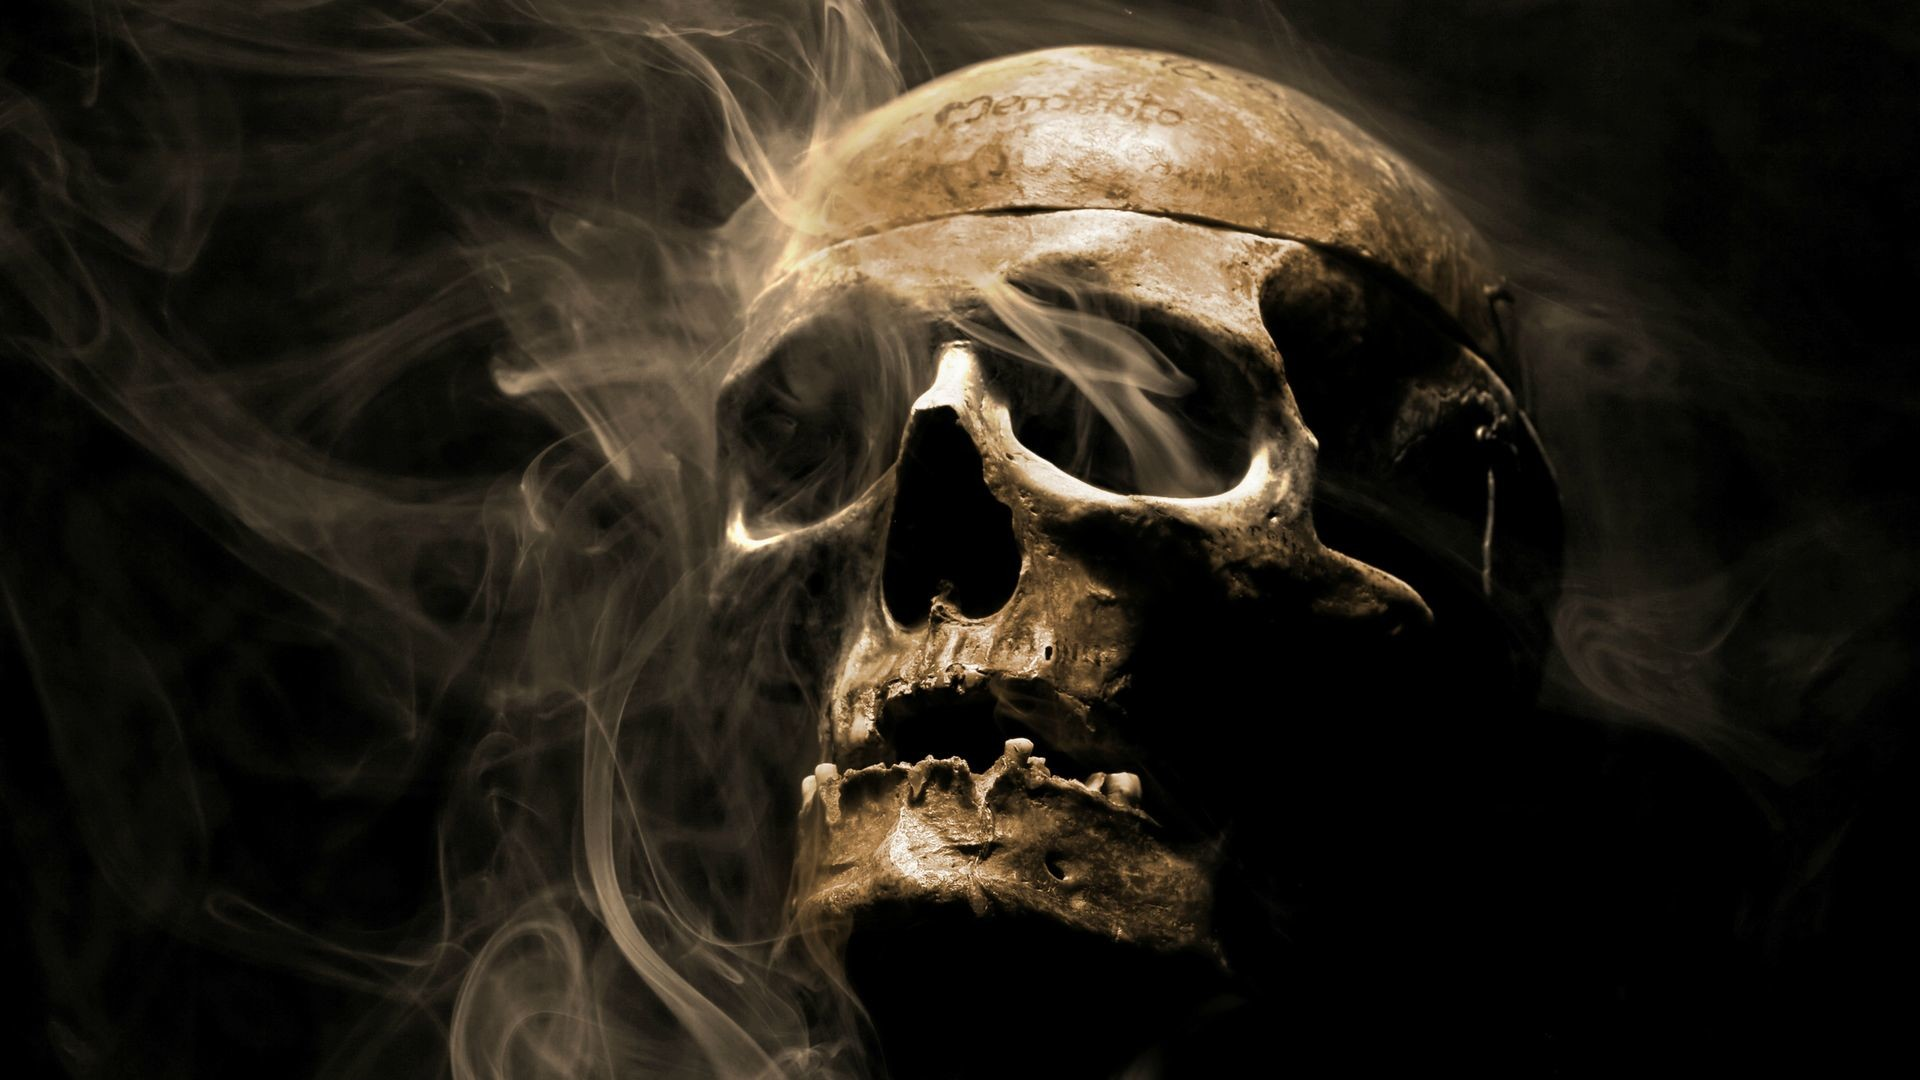 3d Full Hd Wallpapers Free Download Horror Skull Wallpapers 44 Images